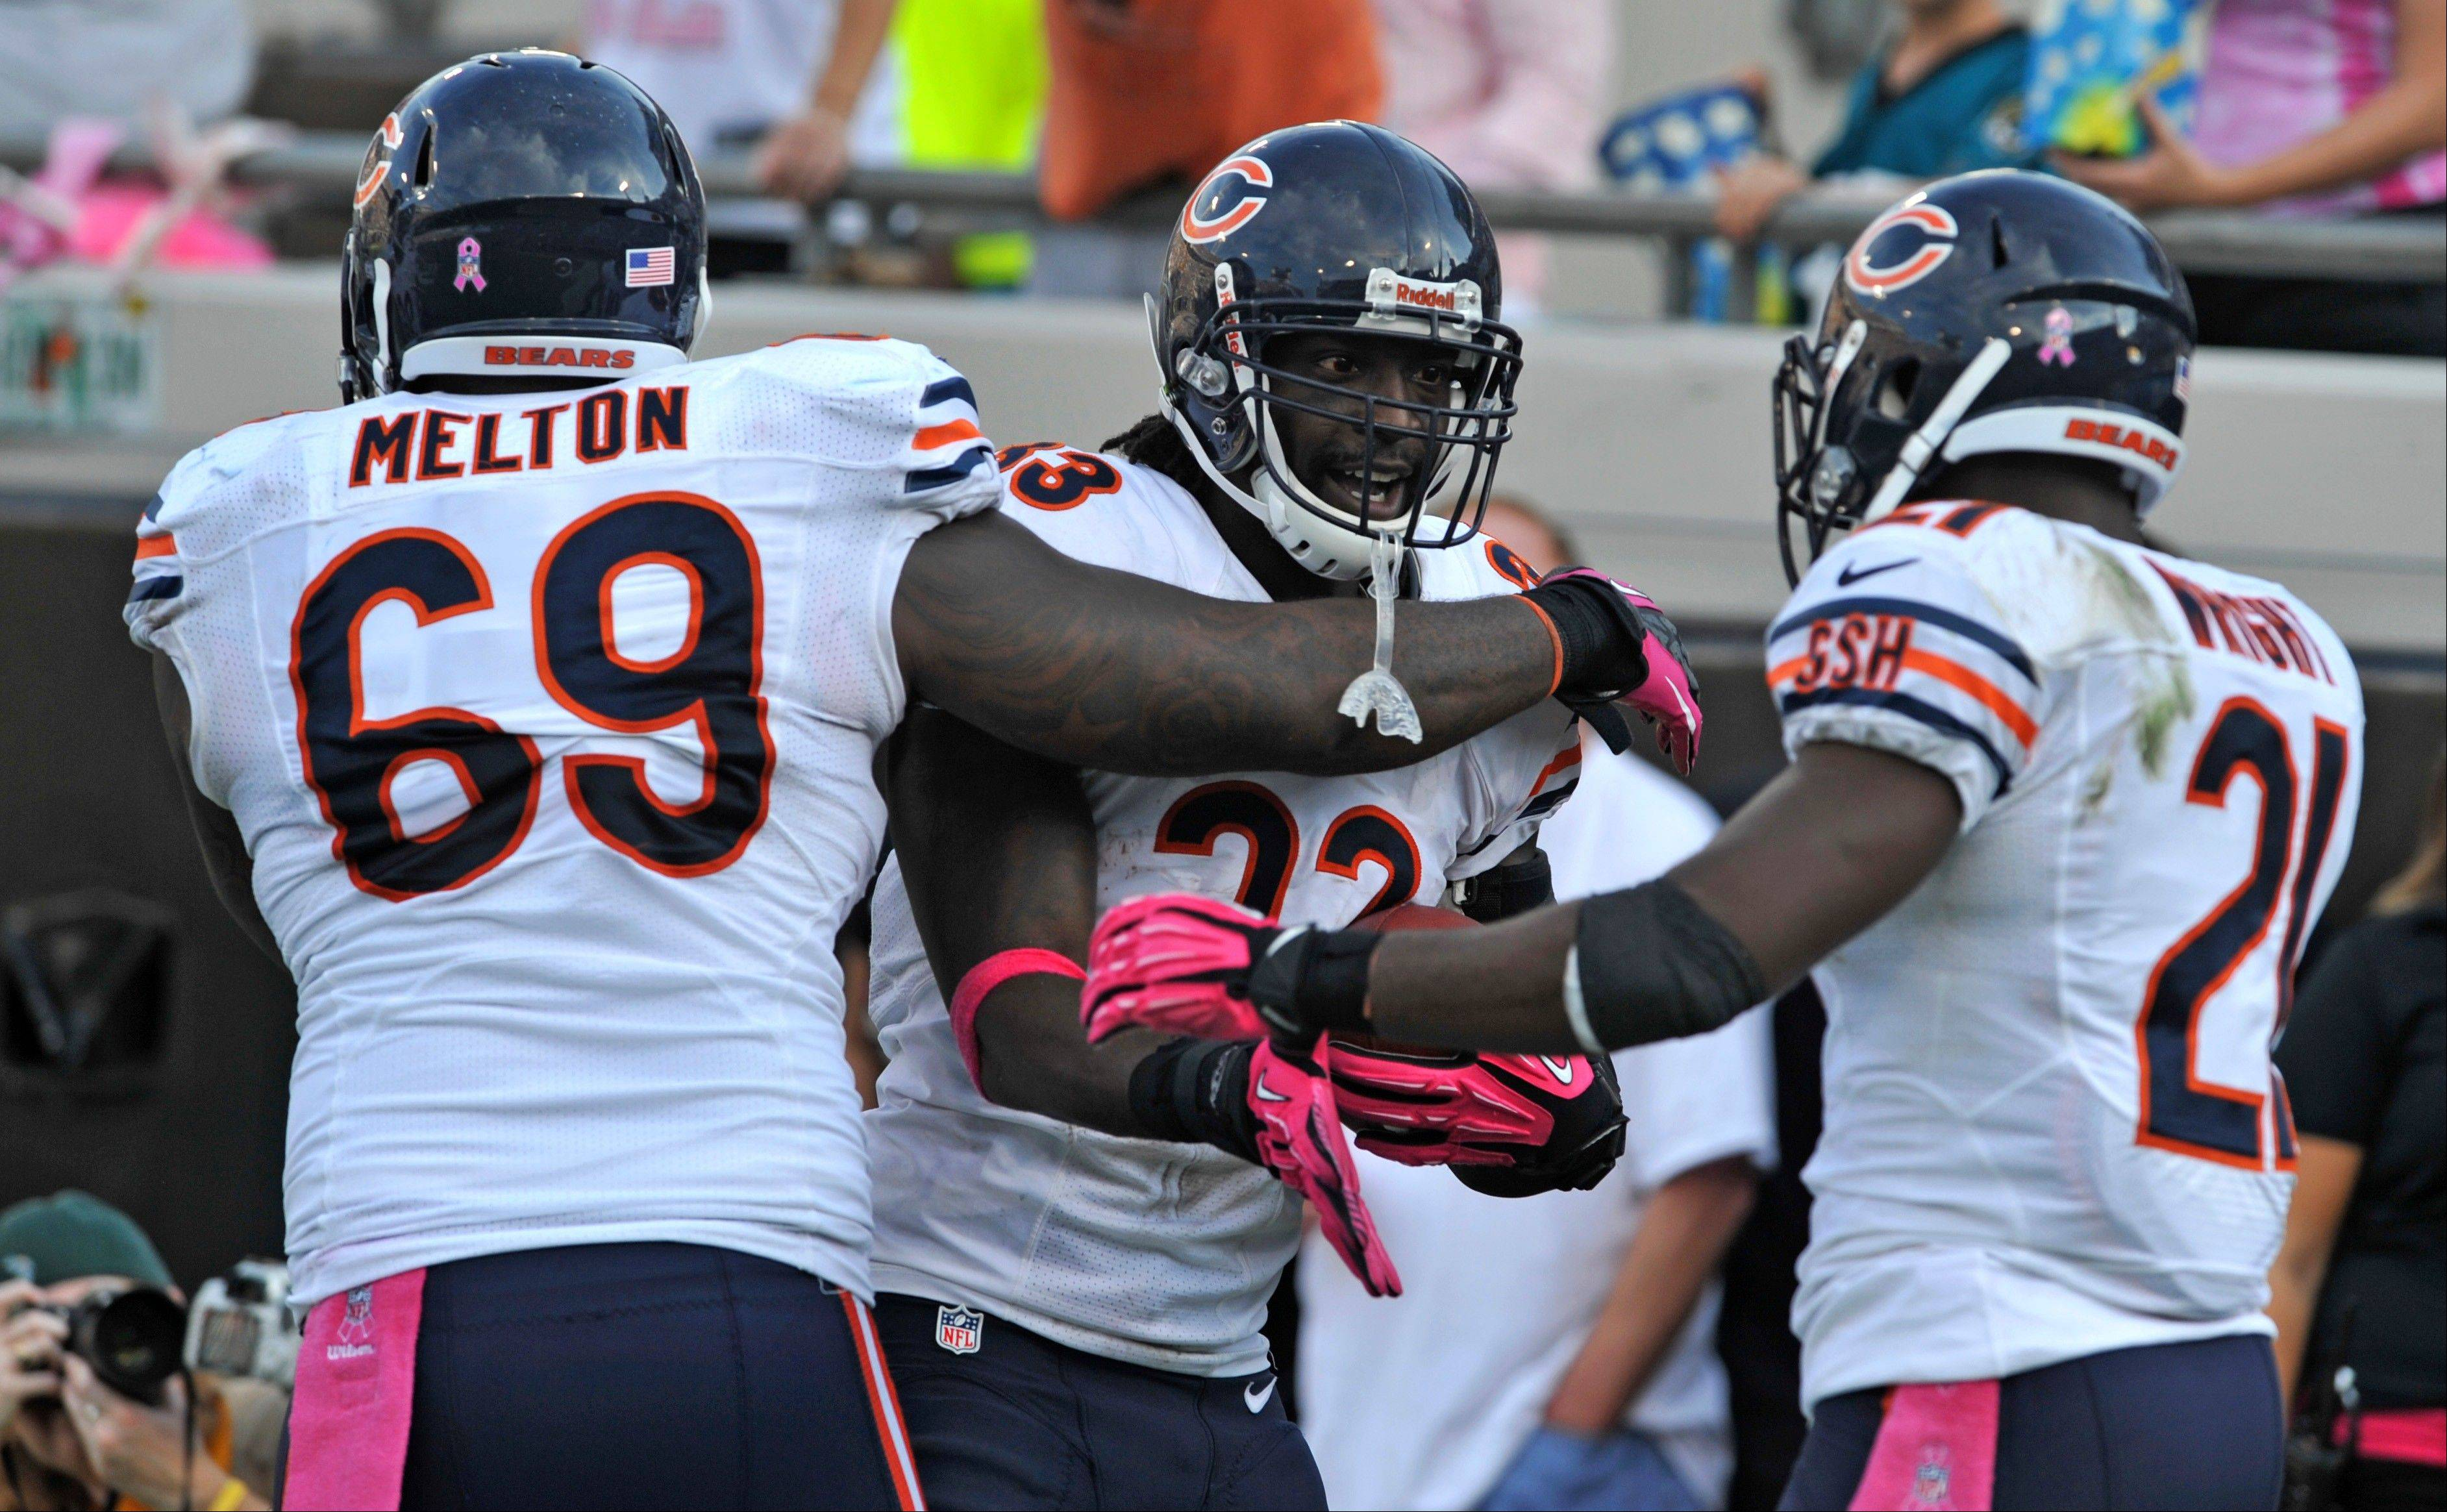 Bears cornerback Charles Tillman, center, celebrates with teammates Henry Melton and Major Wright after intercepting a pass and scoring a 36-yard touchdown in Sunday's second half.